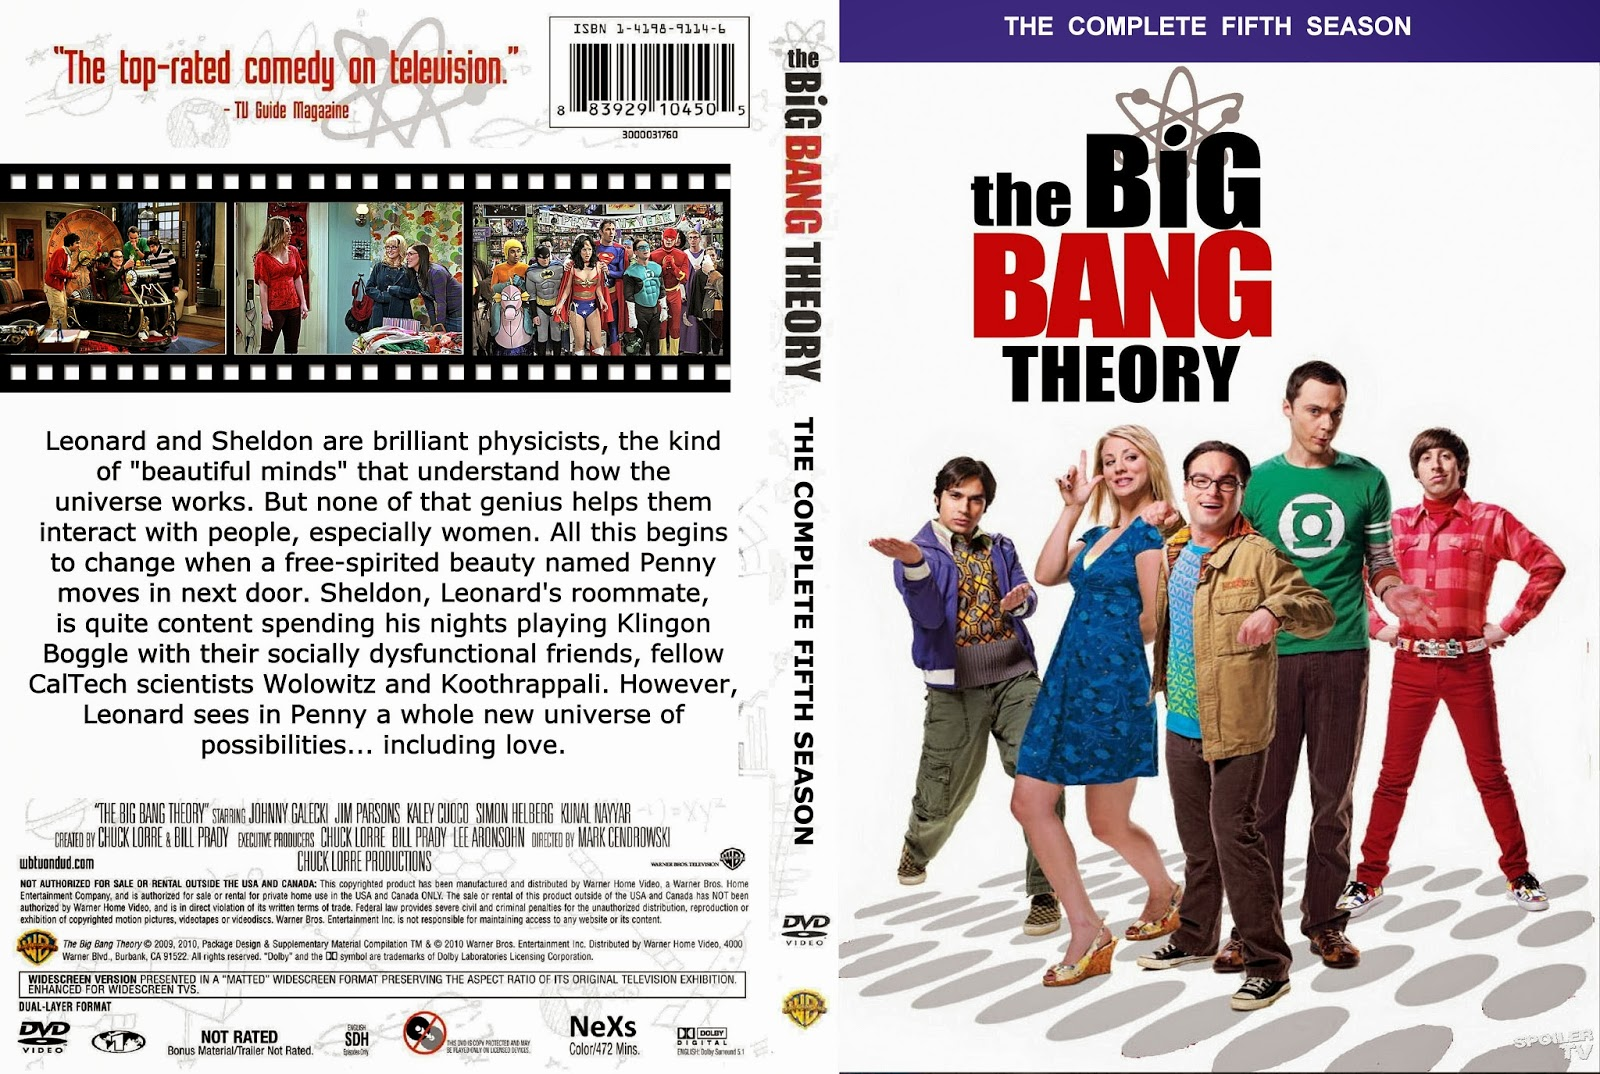 understanding the big bang theory Astronomers combine mathematical models with observations to develop workable theories of how the universe came to be the mathematical underpinnings of the big bang theory include albert einstein's general theory of relativity along with standard theories of fundamental particles.